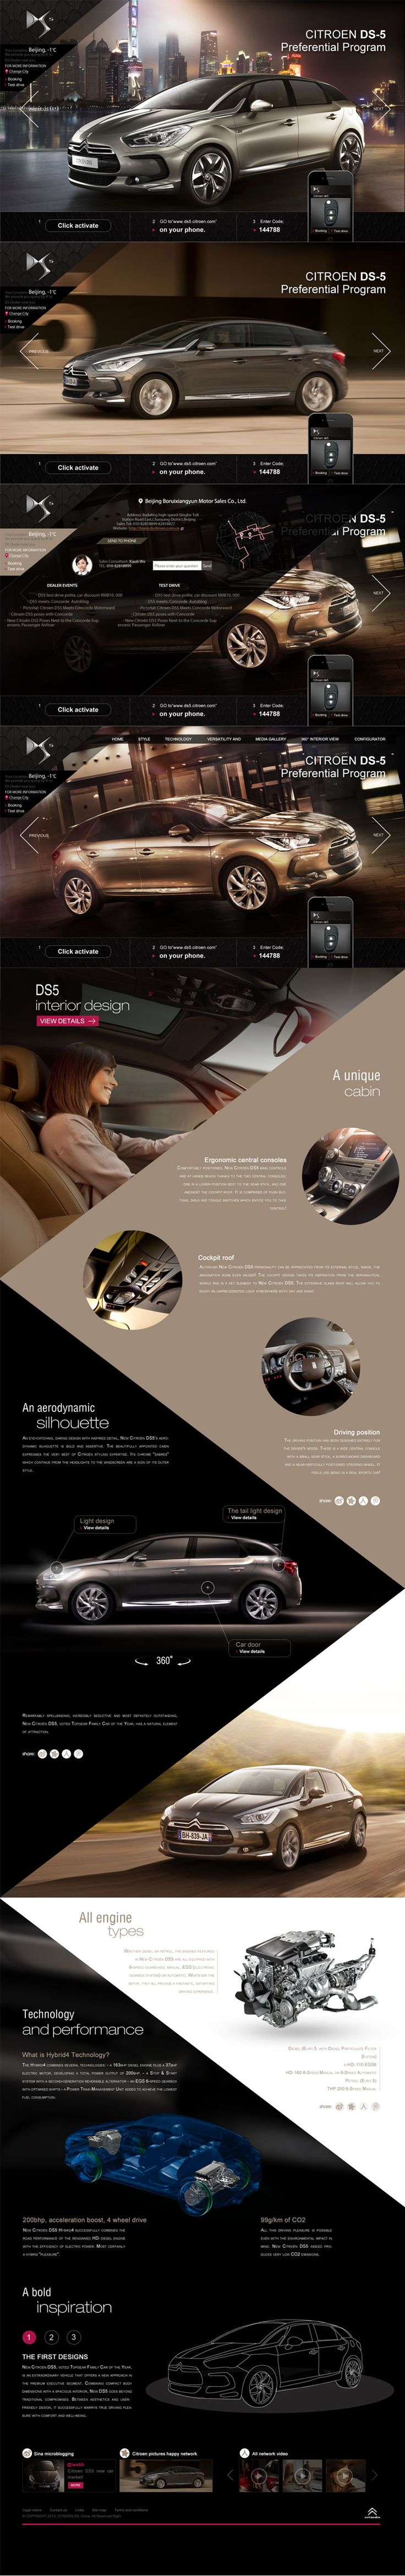 Citroen #webdesign #automotive #design